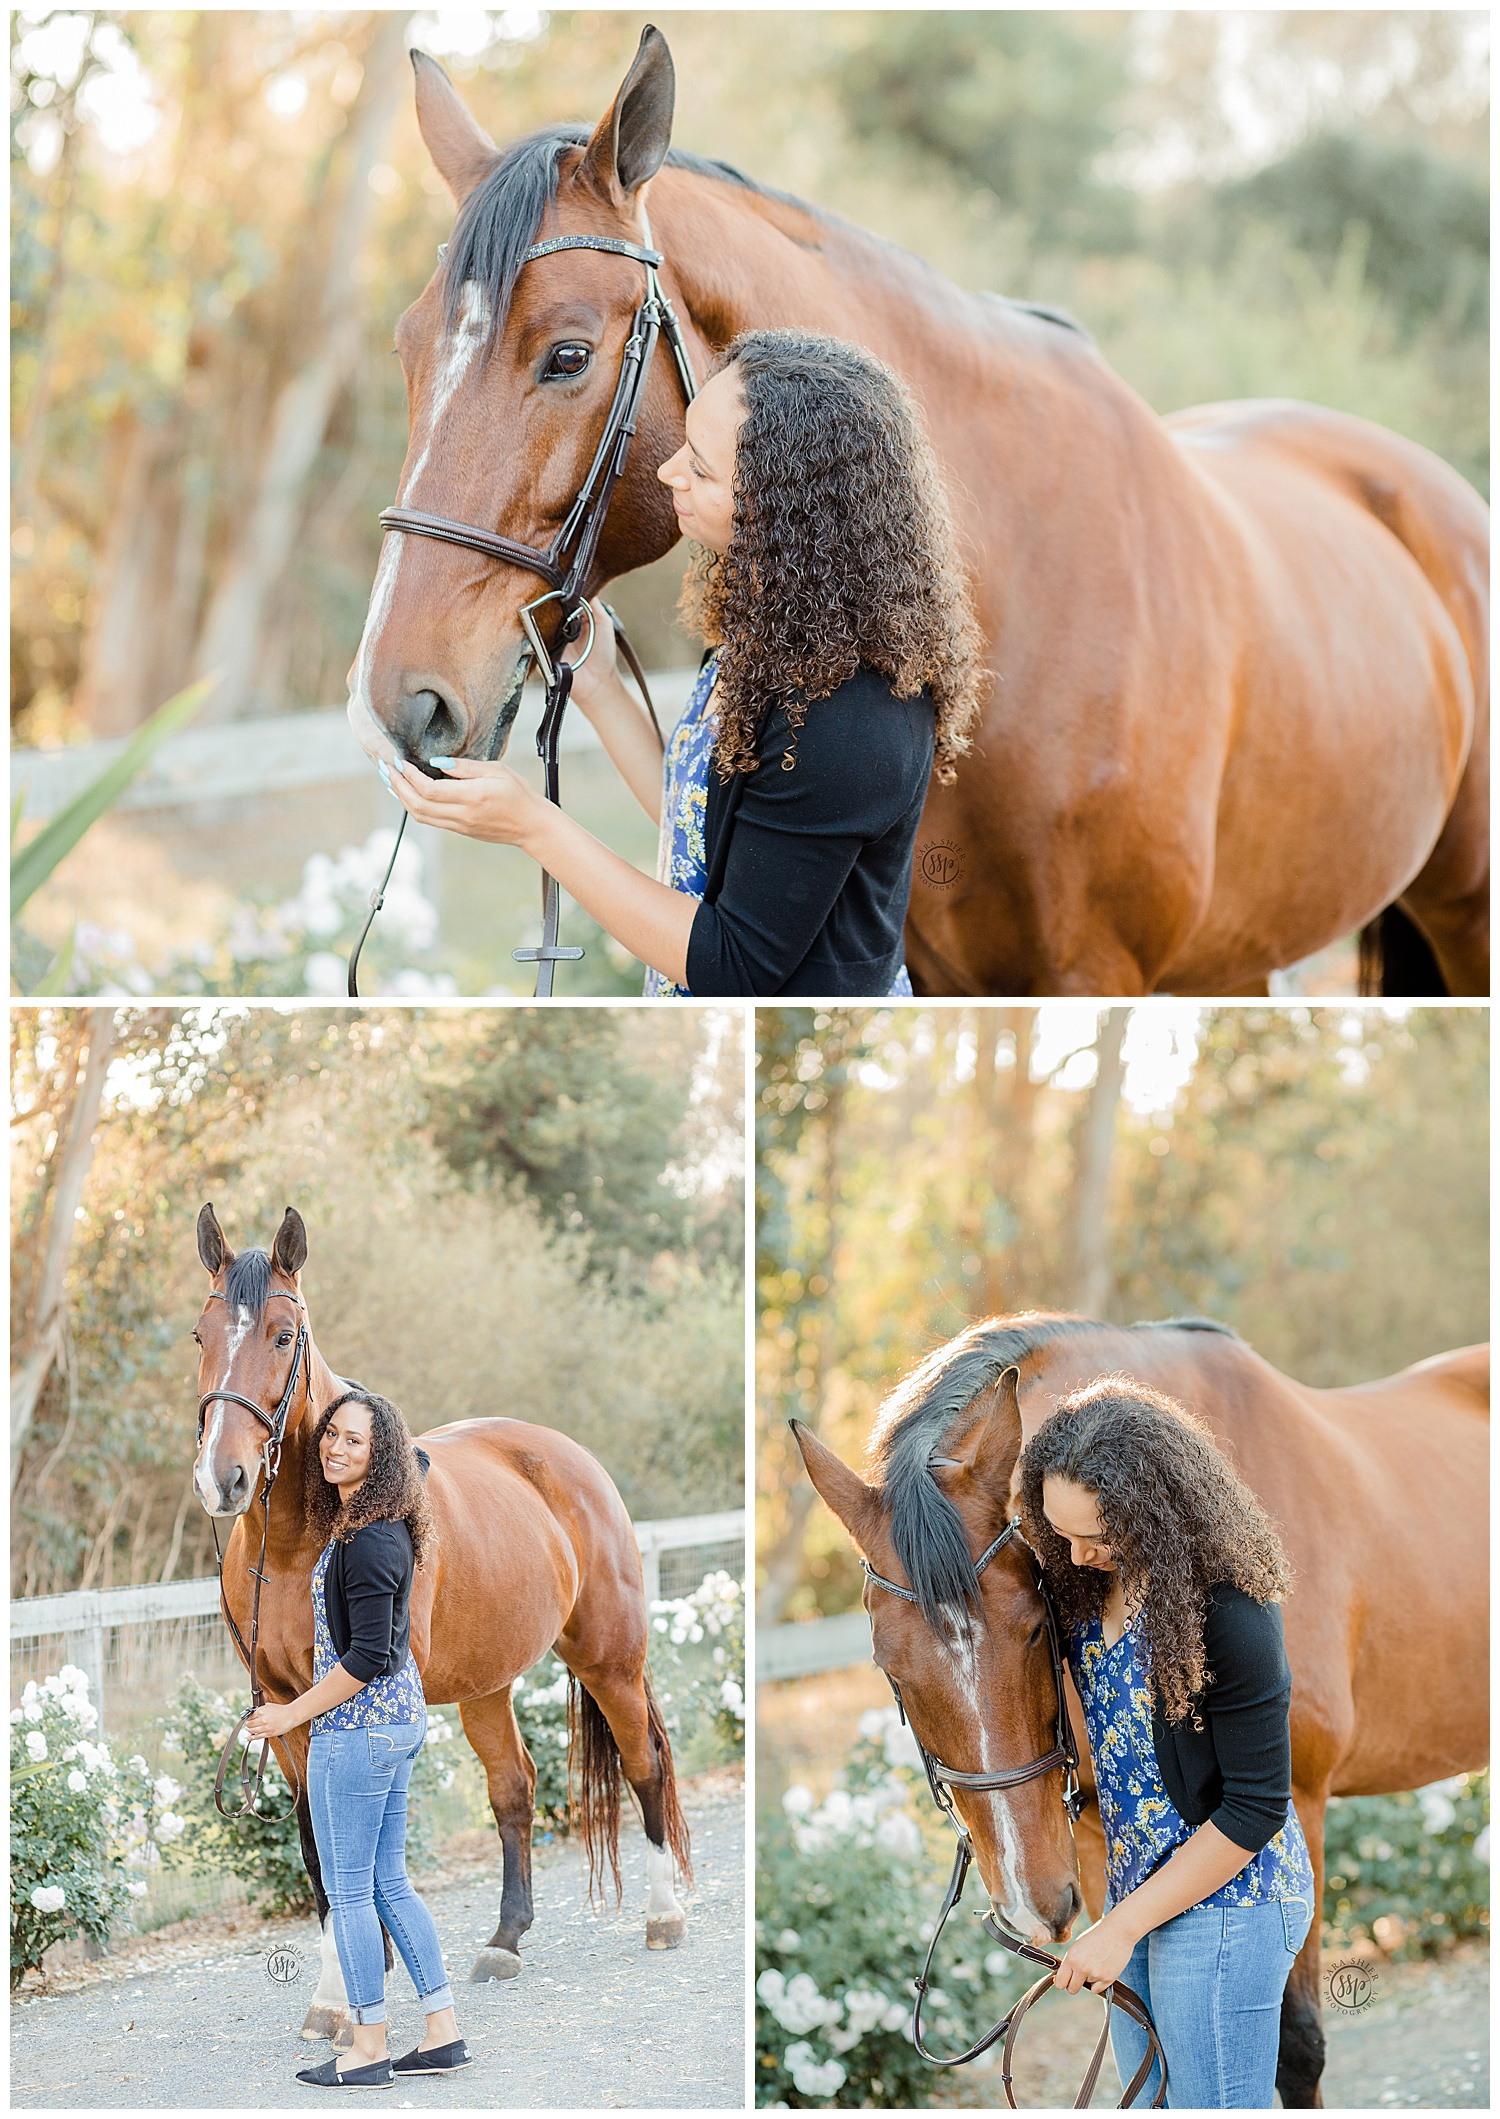 Black Background Horse Rider Equine Photographer Southern California Sara Shier Photography SoCal Equestrian Cowgirl_0234.jpg